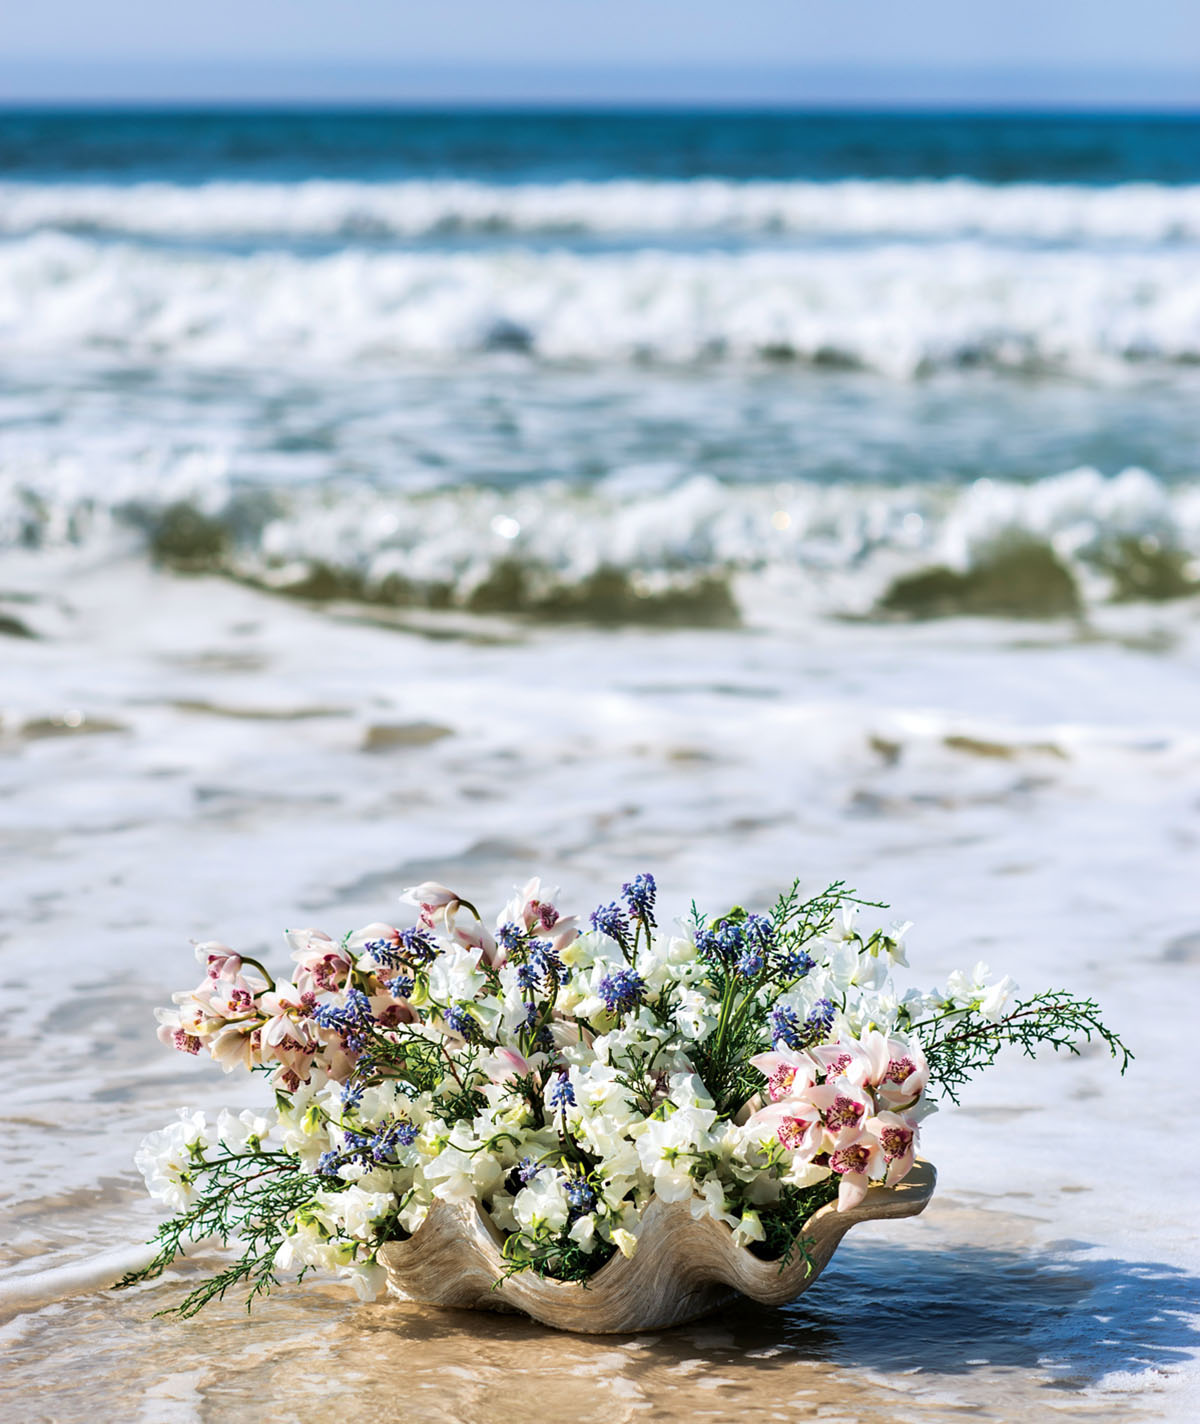 large half shell filled with flowers set on the shore with waves and blue sky in the background